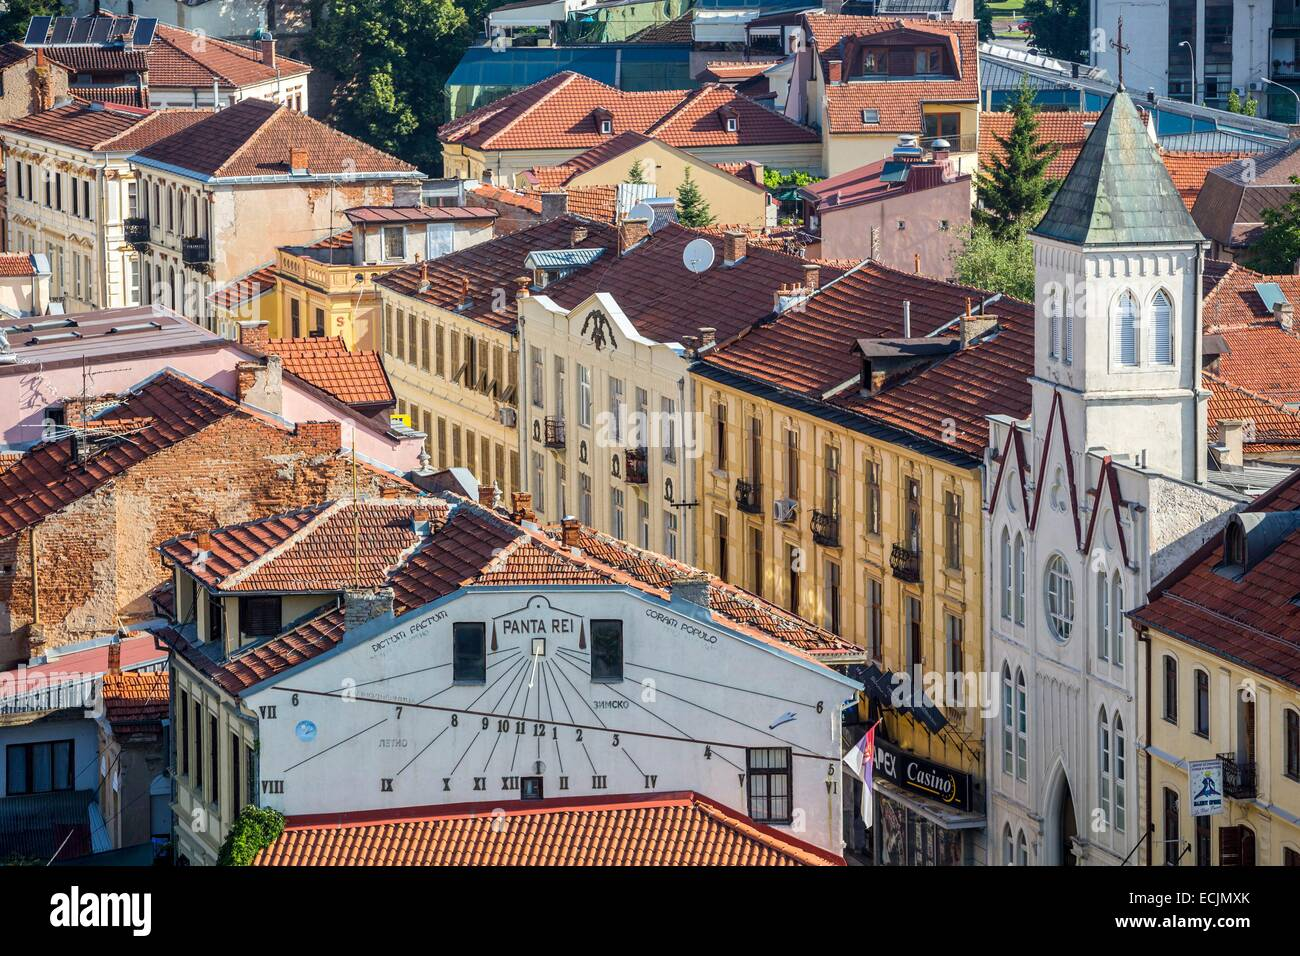 Republic of Macedonia, Bitola, general view of downtown - Stock Image